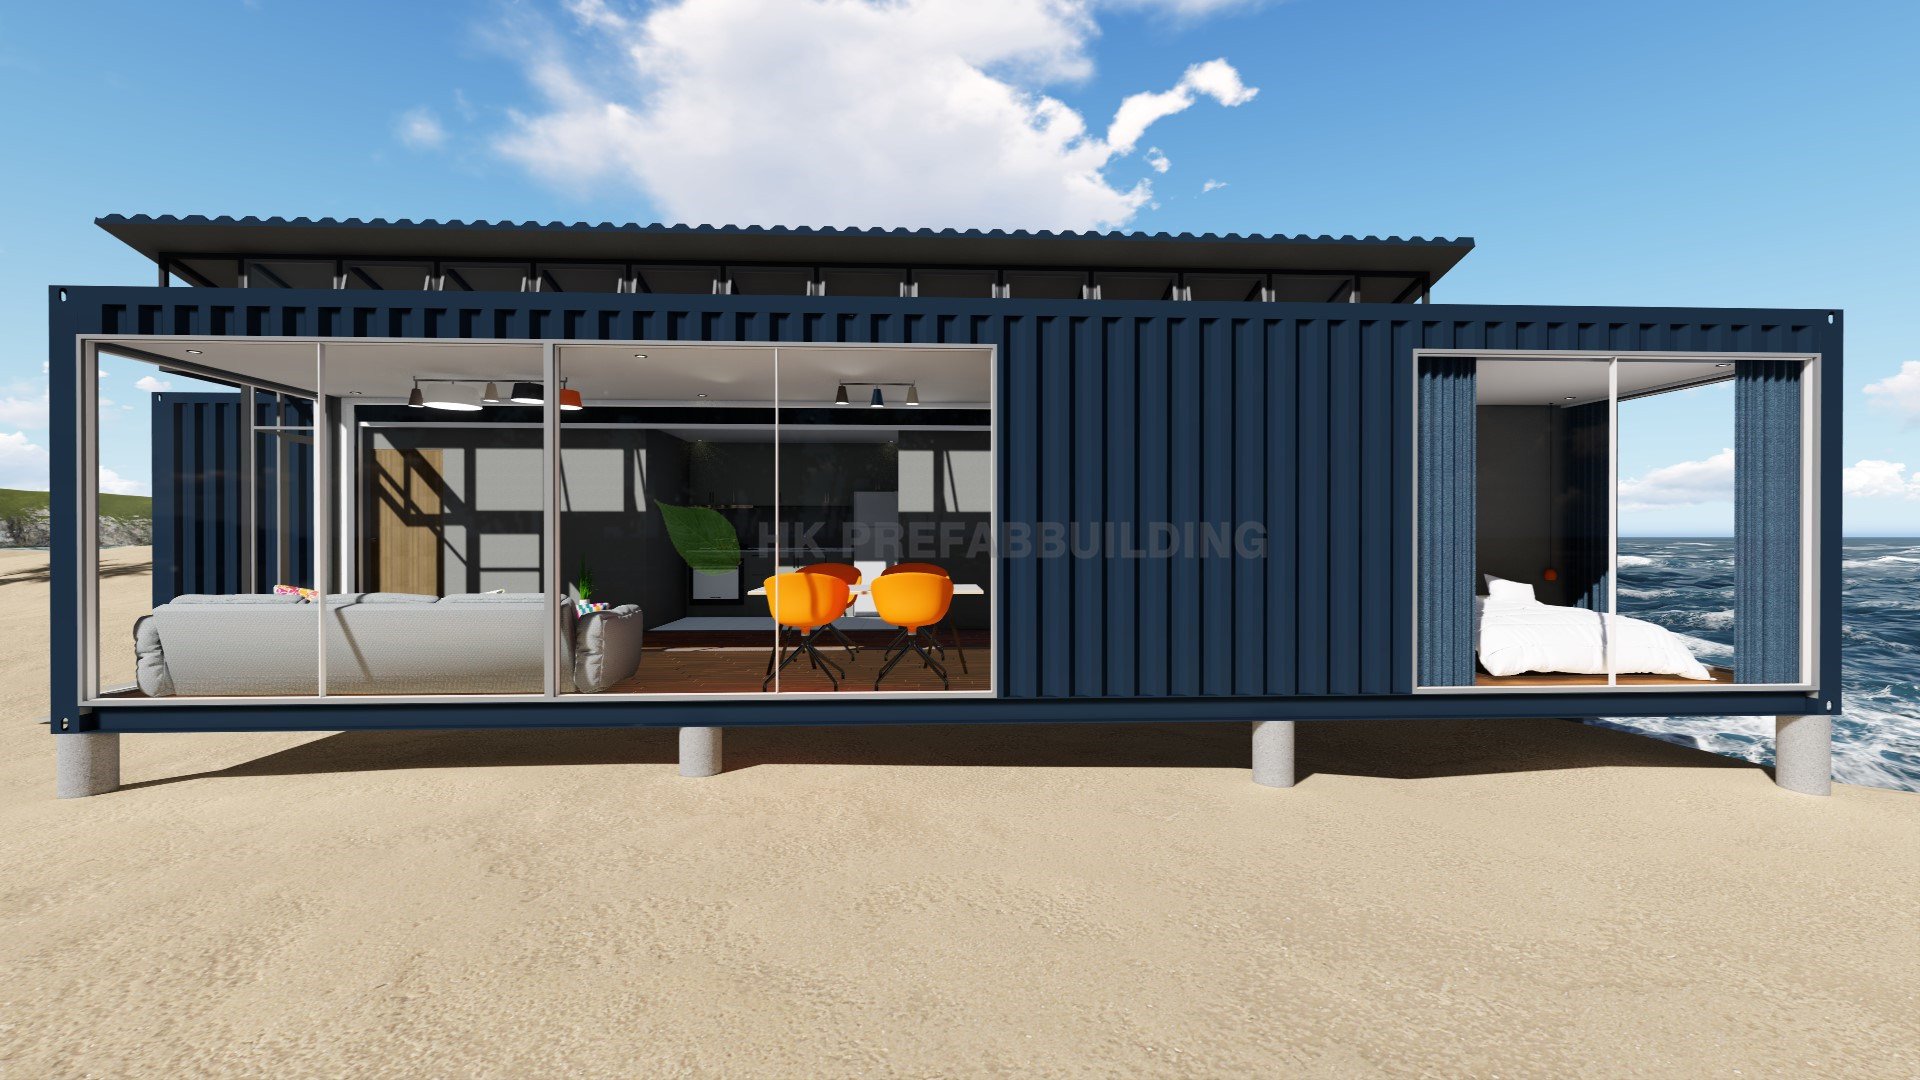 China deluxe ocean view modular prefabricated 40feet - 40ft shipping container home ...